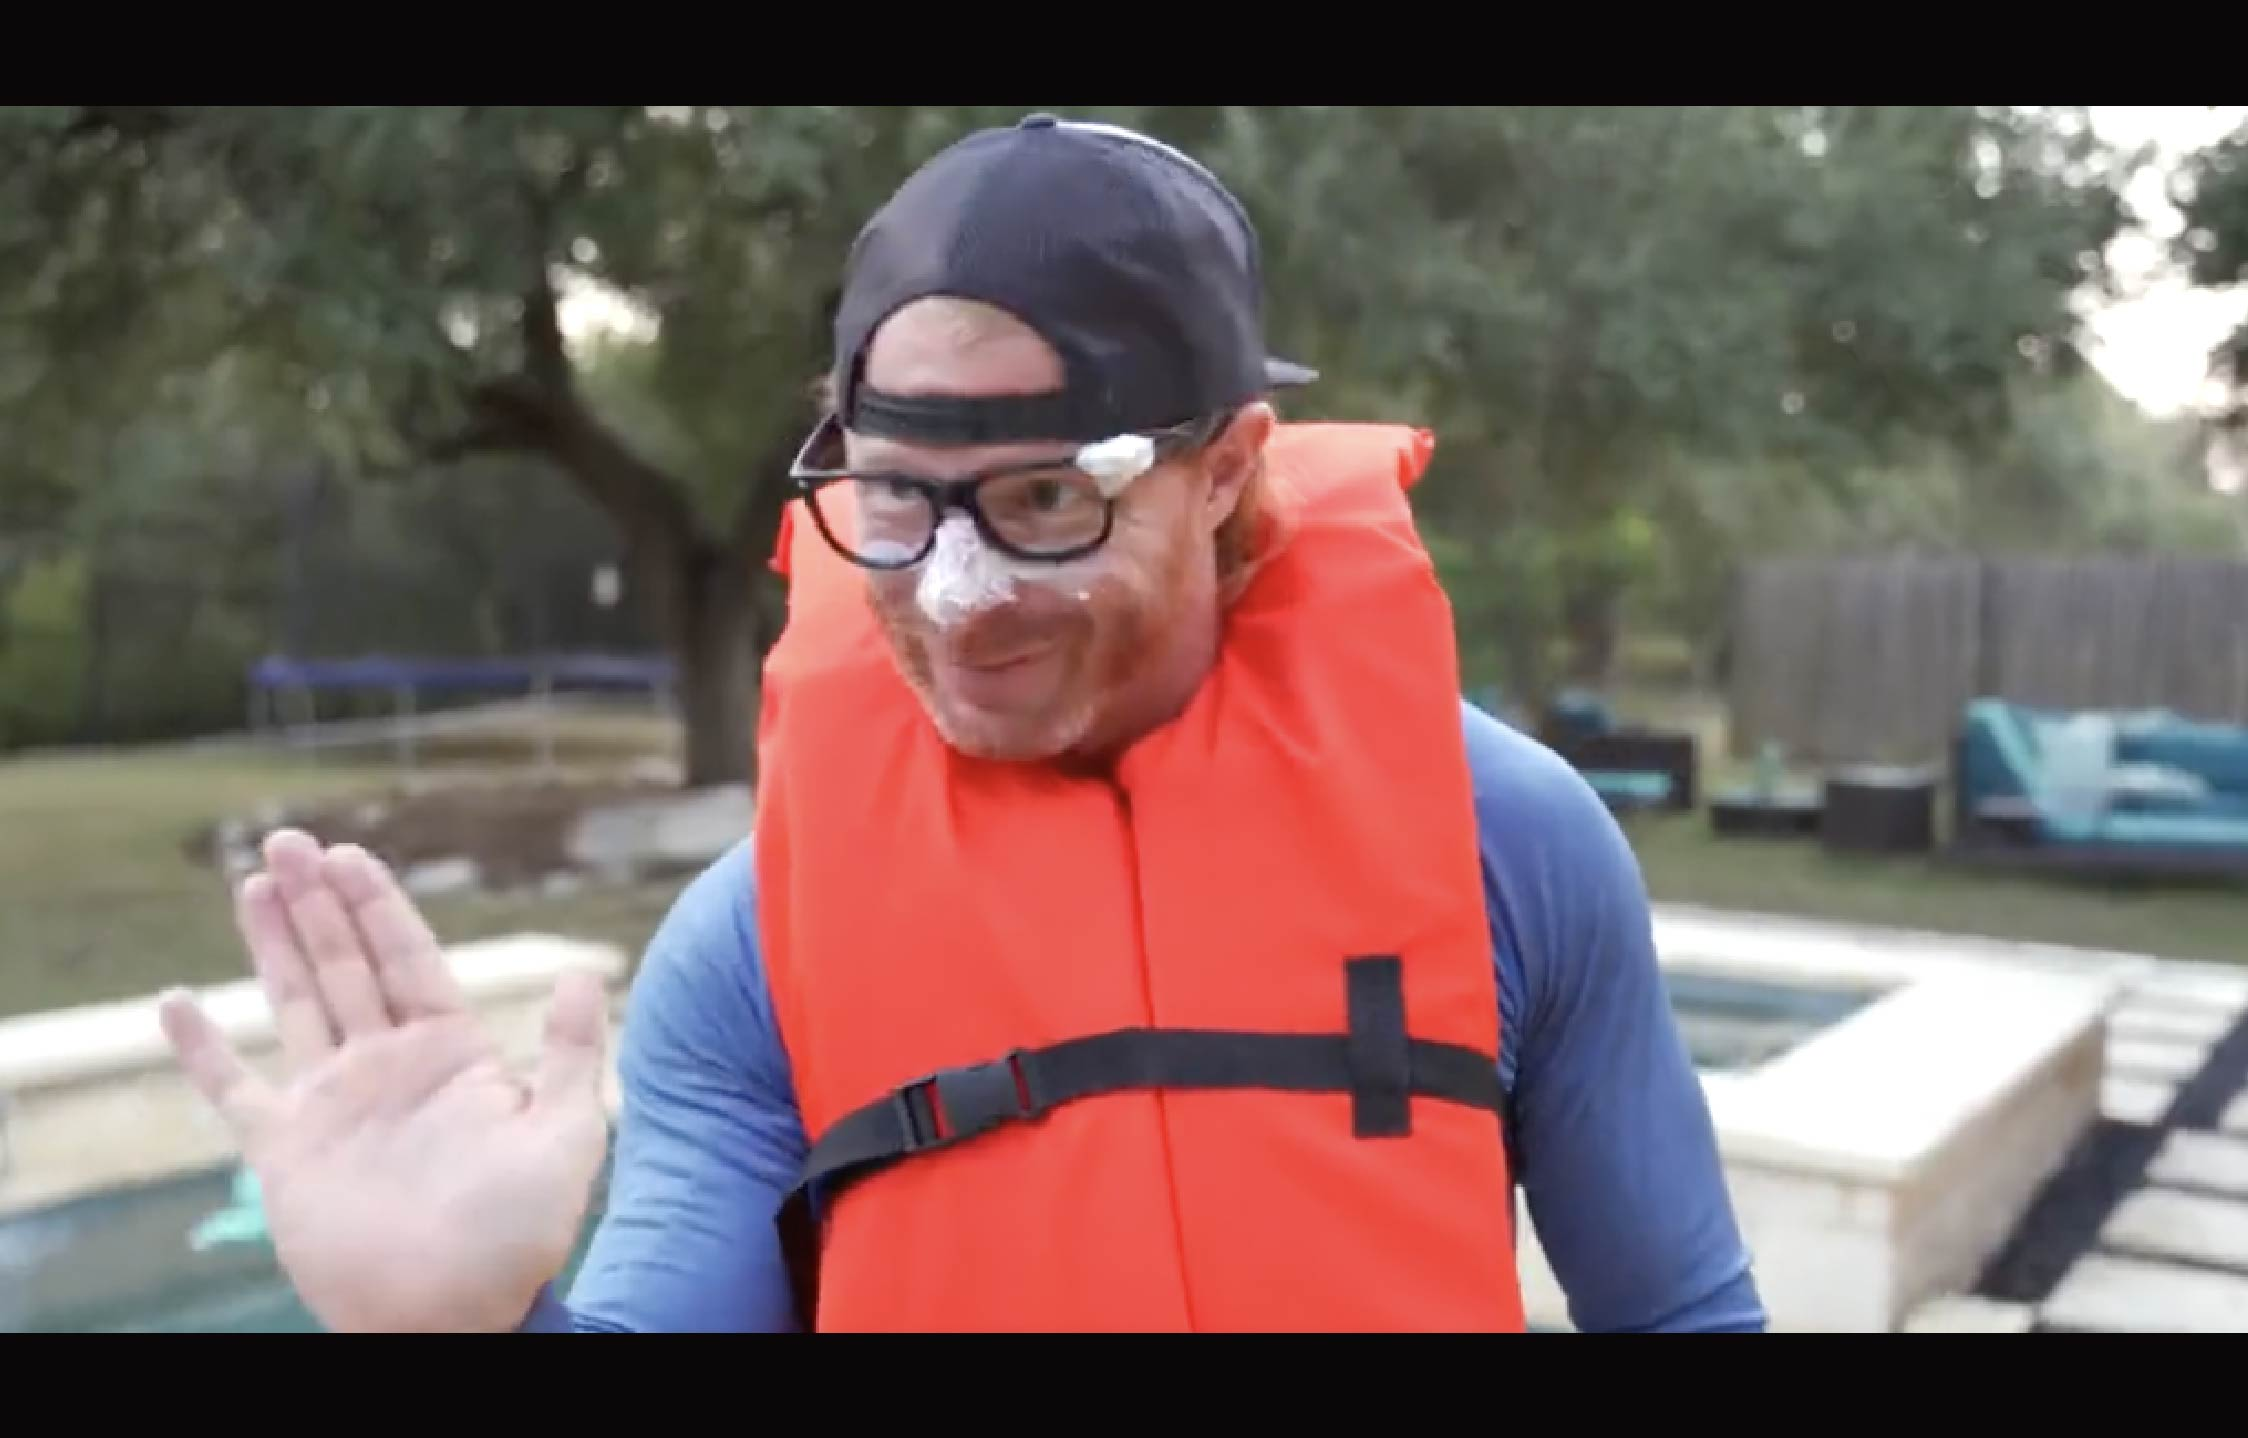 """[VIDEO] Parody Clip Comparing Liberals Pushing """"Life Jackets"""" to COVID Vax is Hilarious, and Scarily Spot-On"""